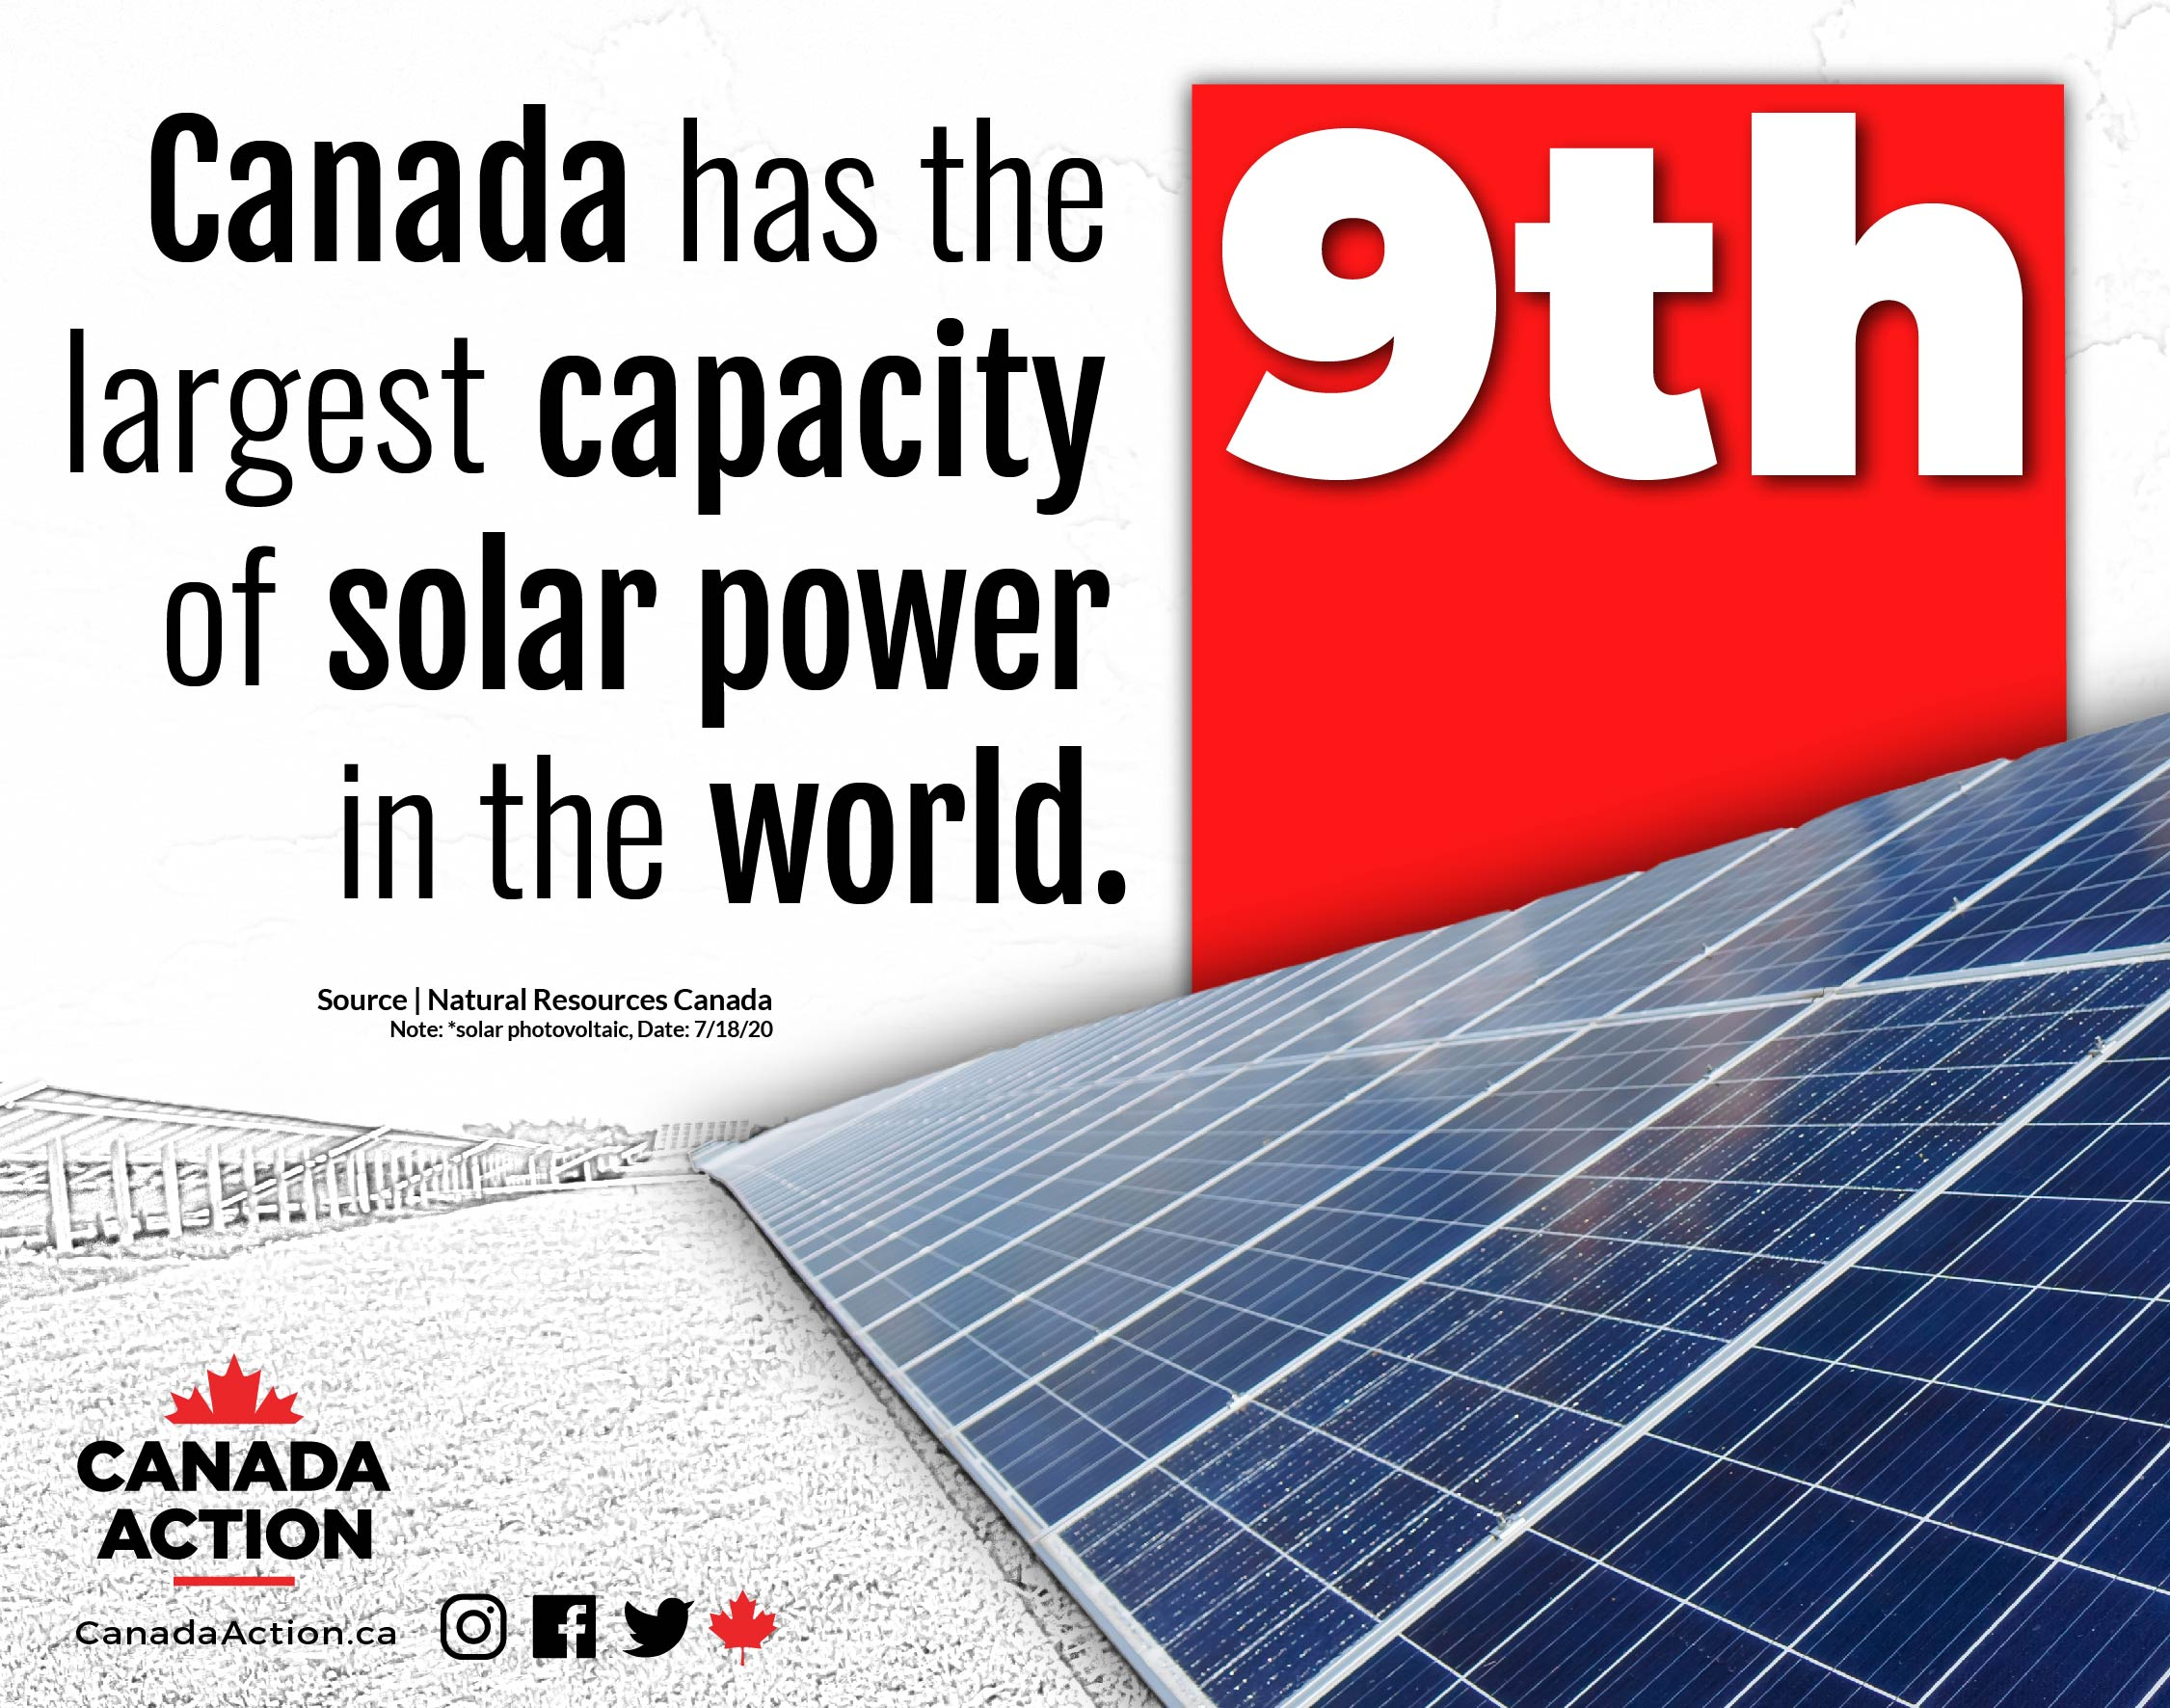 Canada 9th largest solar capacity in the world